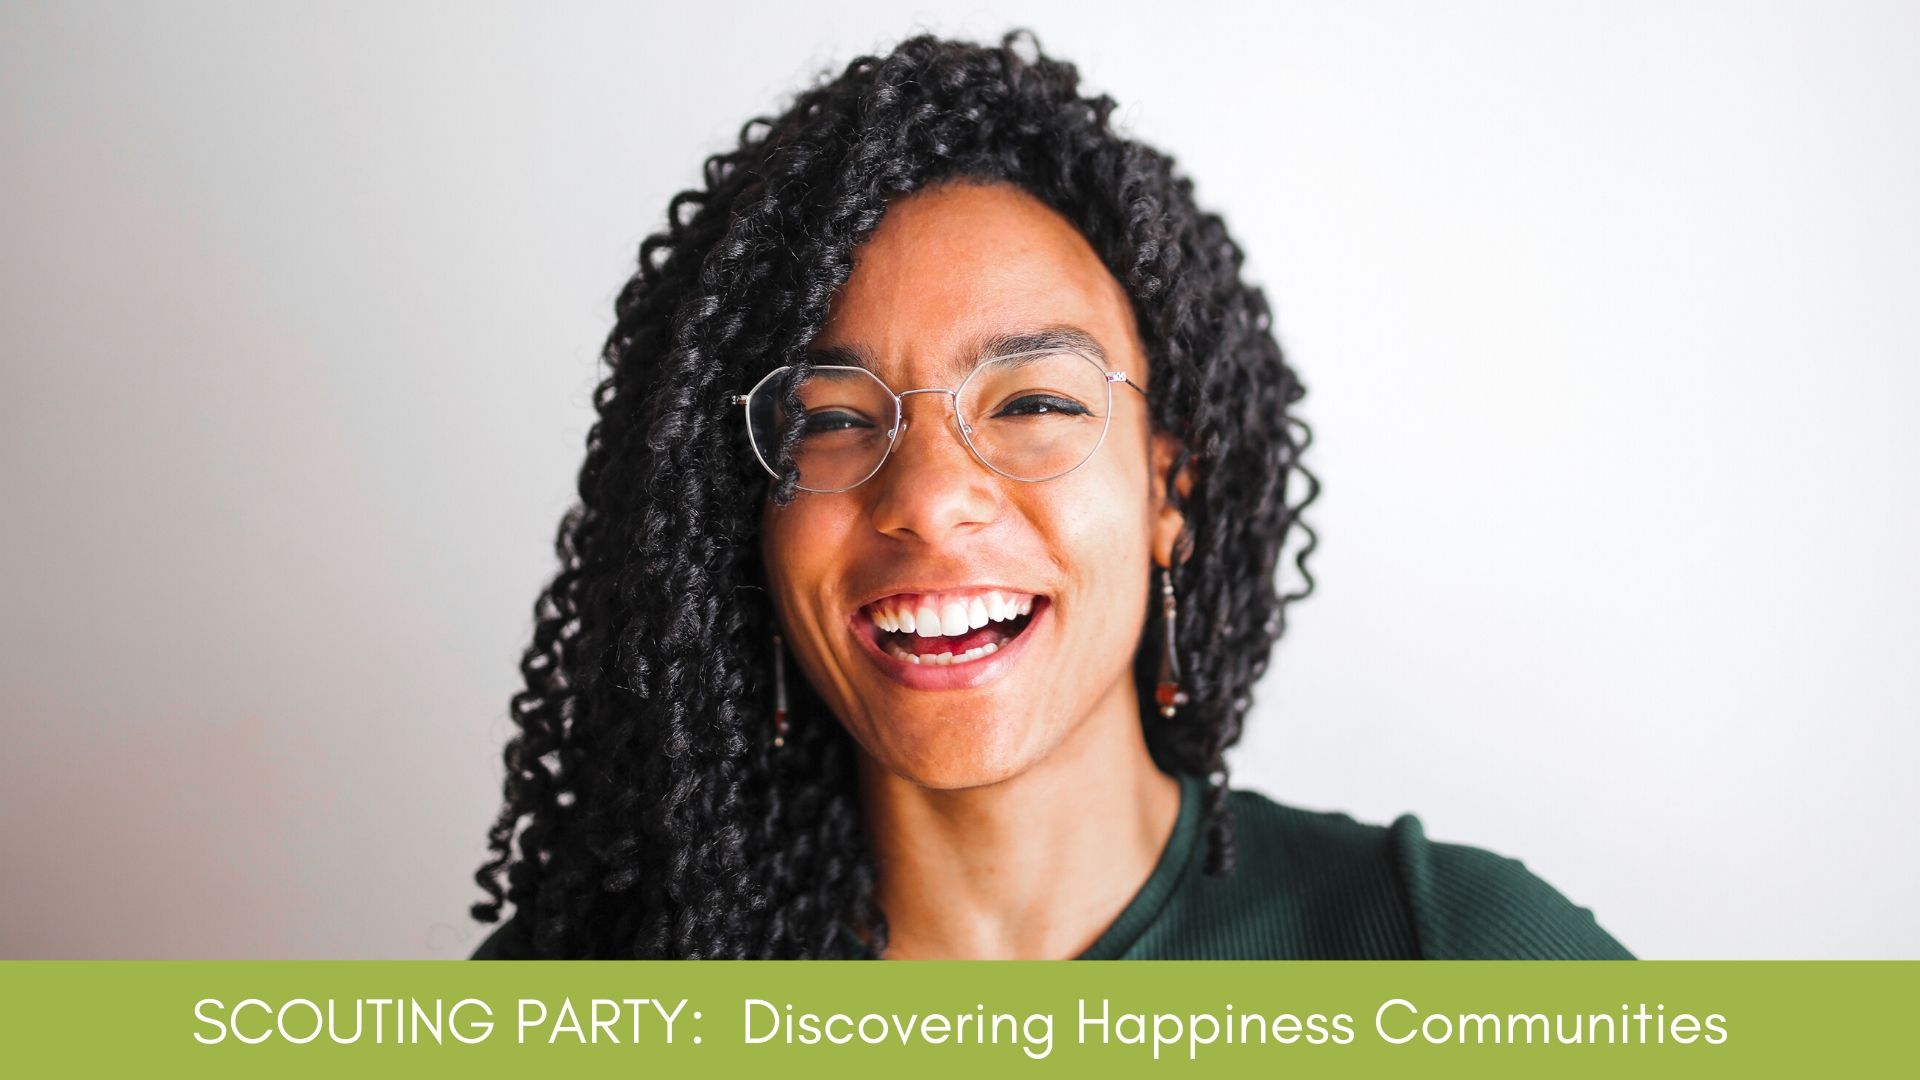 SCOUTING PARTY: Discovering Happiness Communities